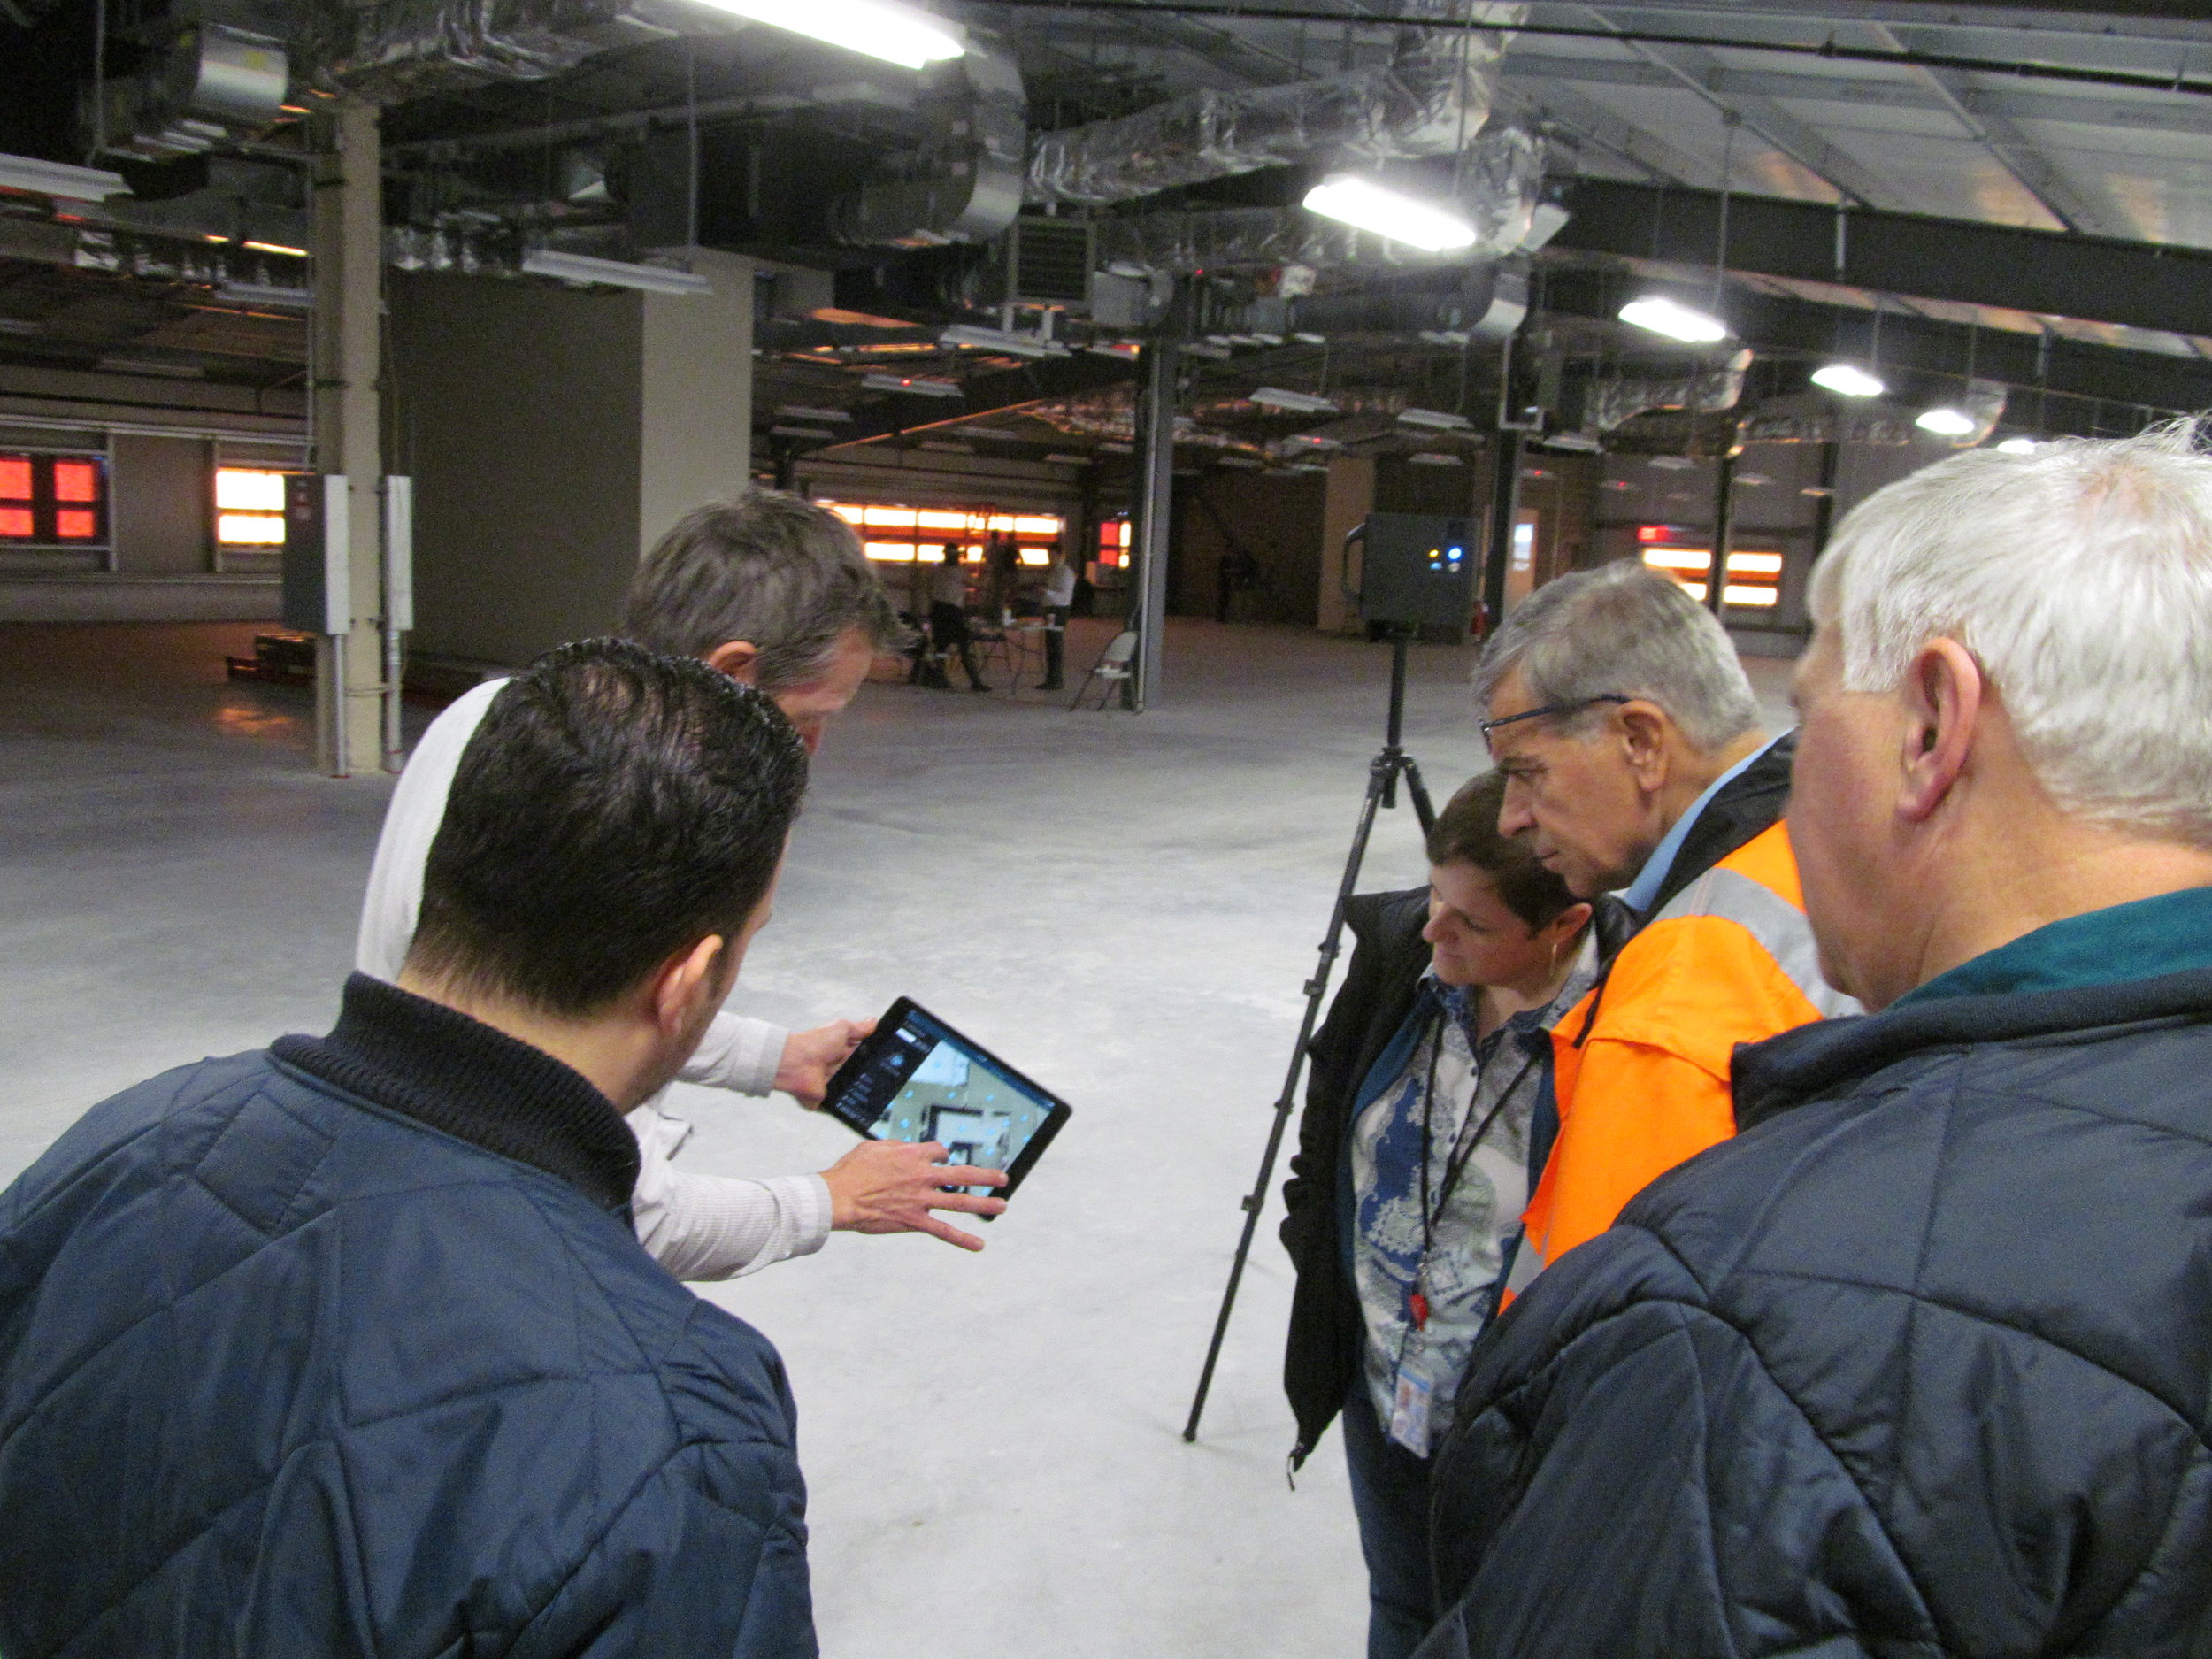 Demonstrating the Matterport reality capture software and hardware. These tools are used to quickly survey the site by creating a point cloud and a 3D internet-based model.